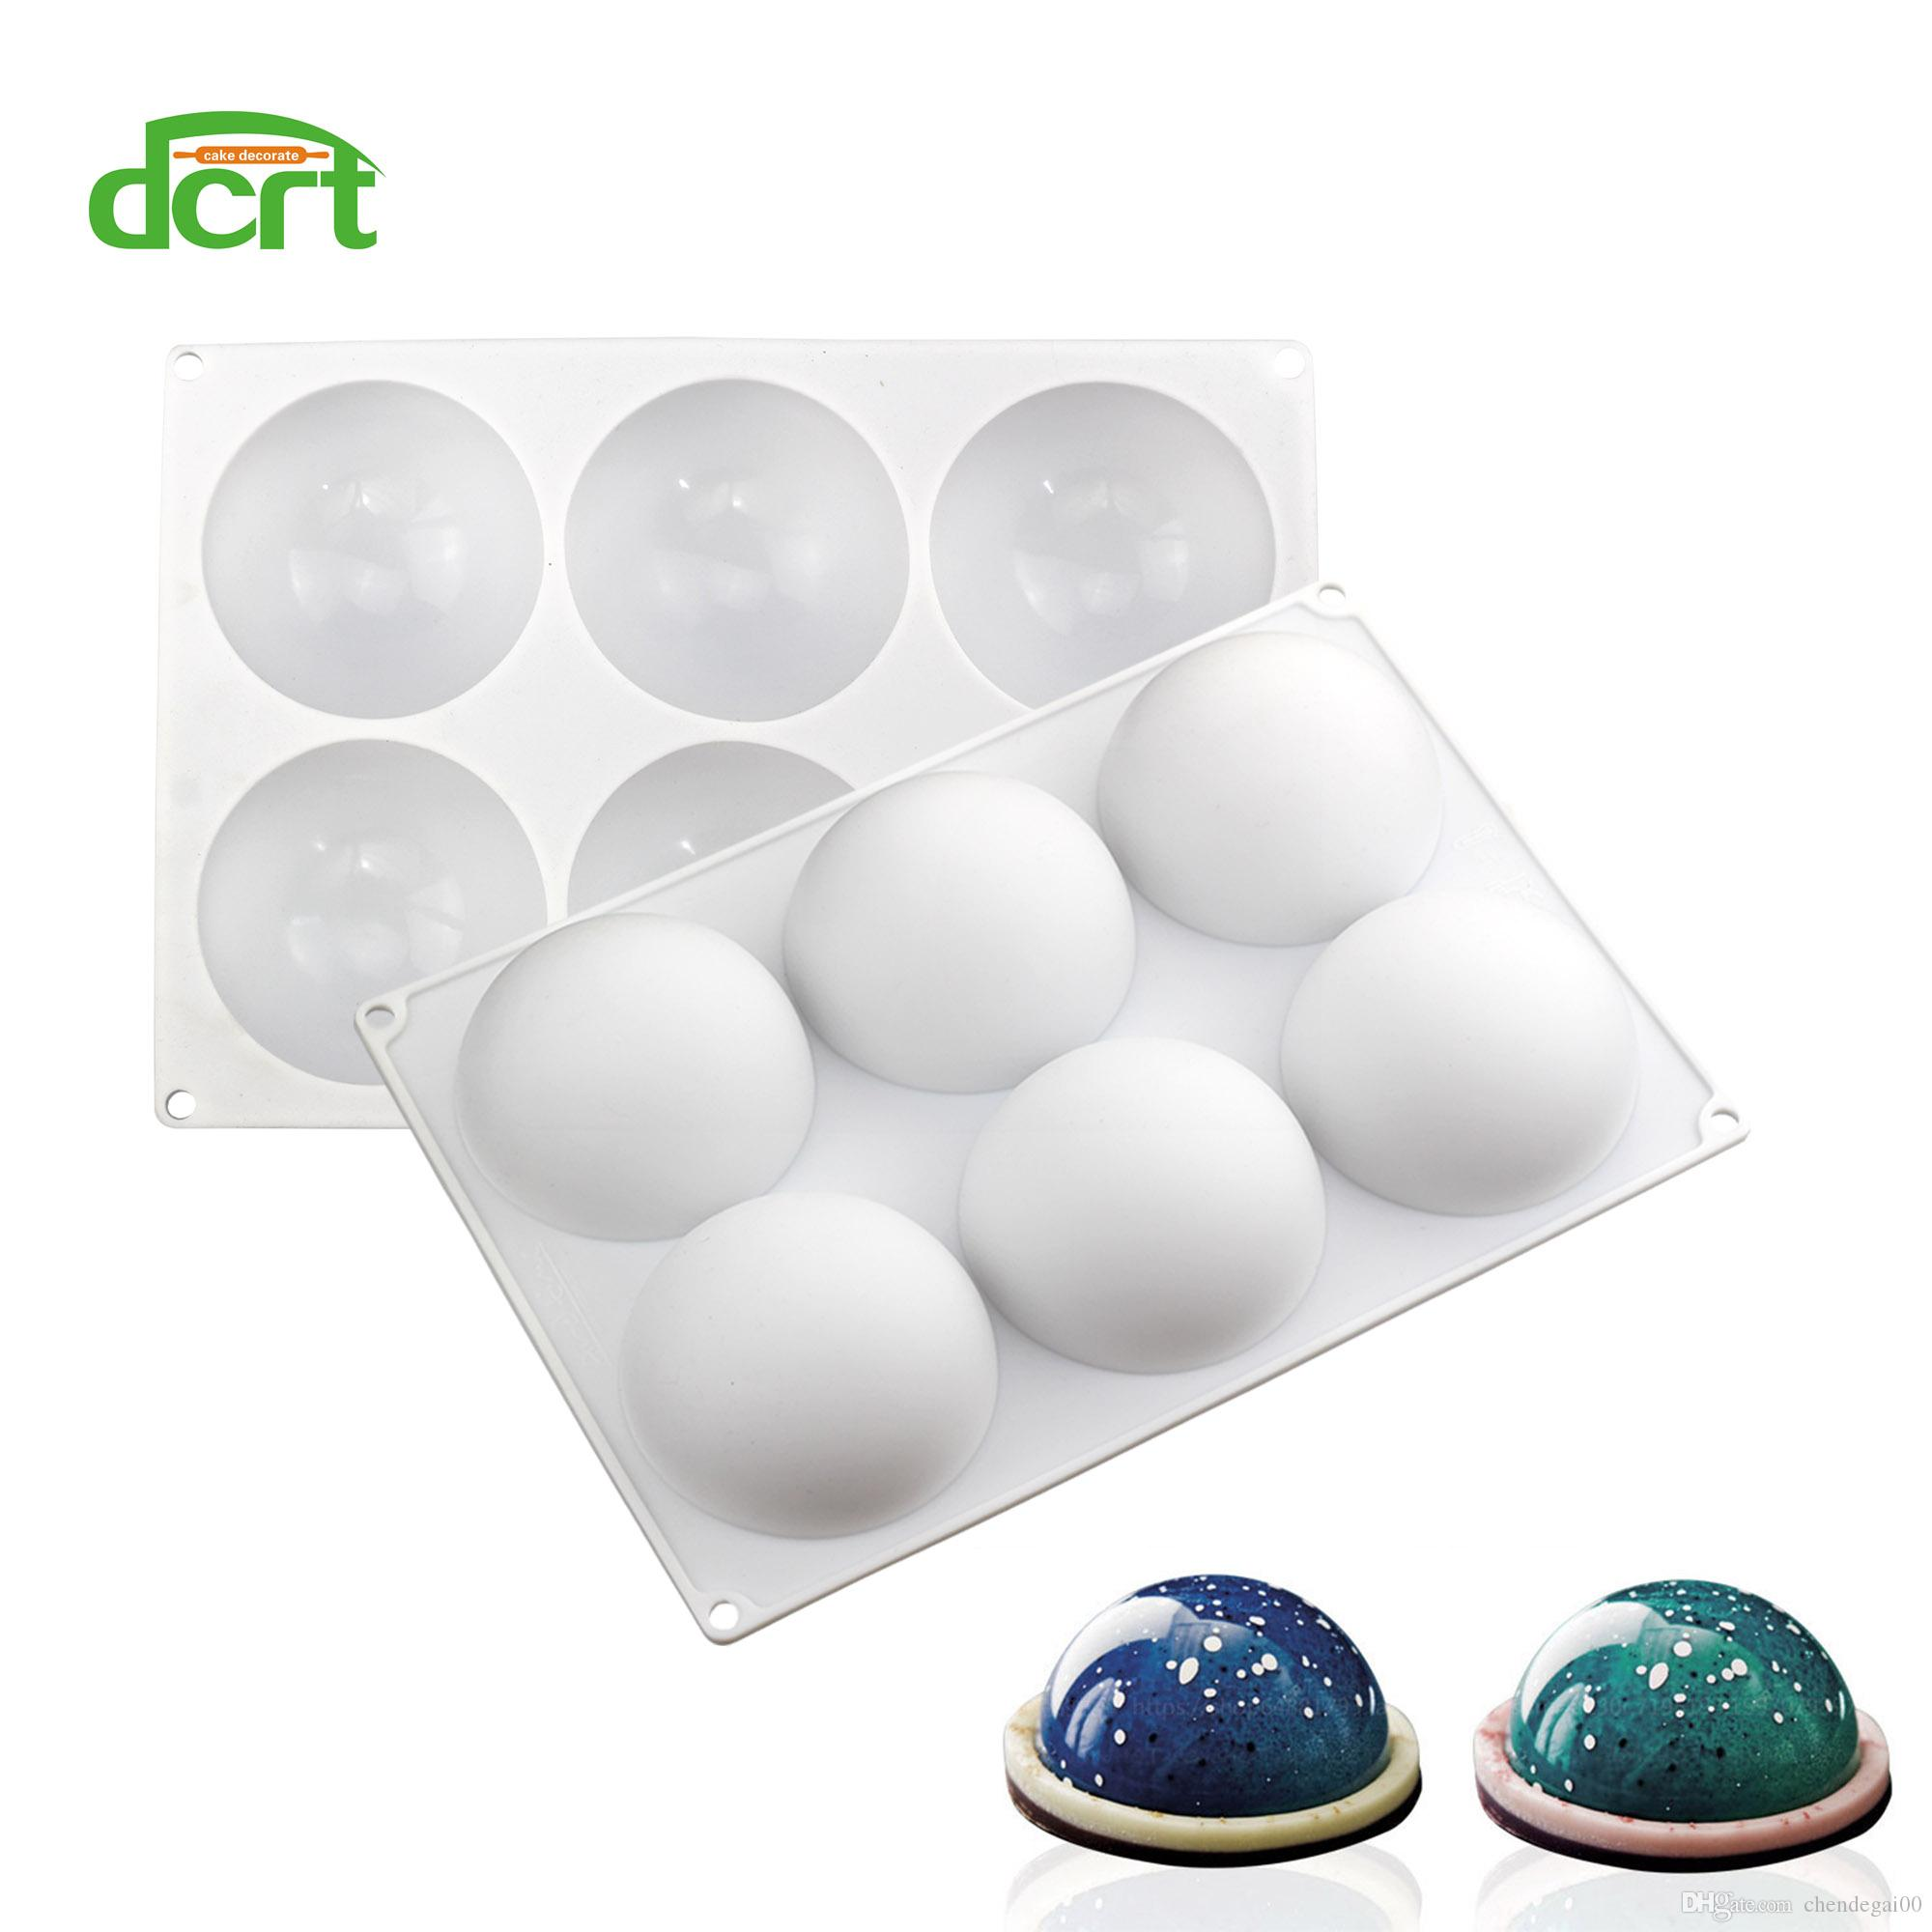 6 Cavity Half Ball Shape Silicone Cake Mold for Desserts Candy Chocolate Pastries Non-Stick Pans Cakes Decorating Bakeware